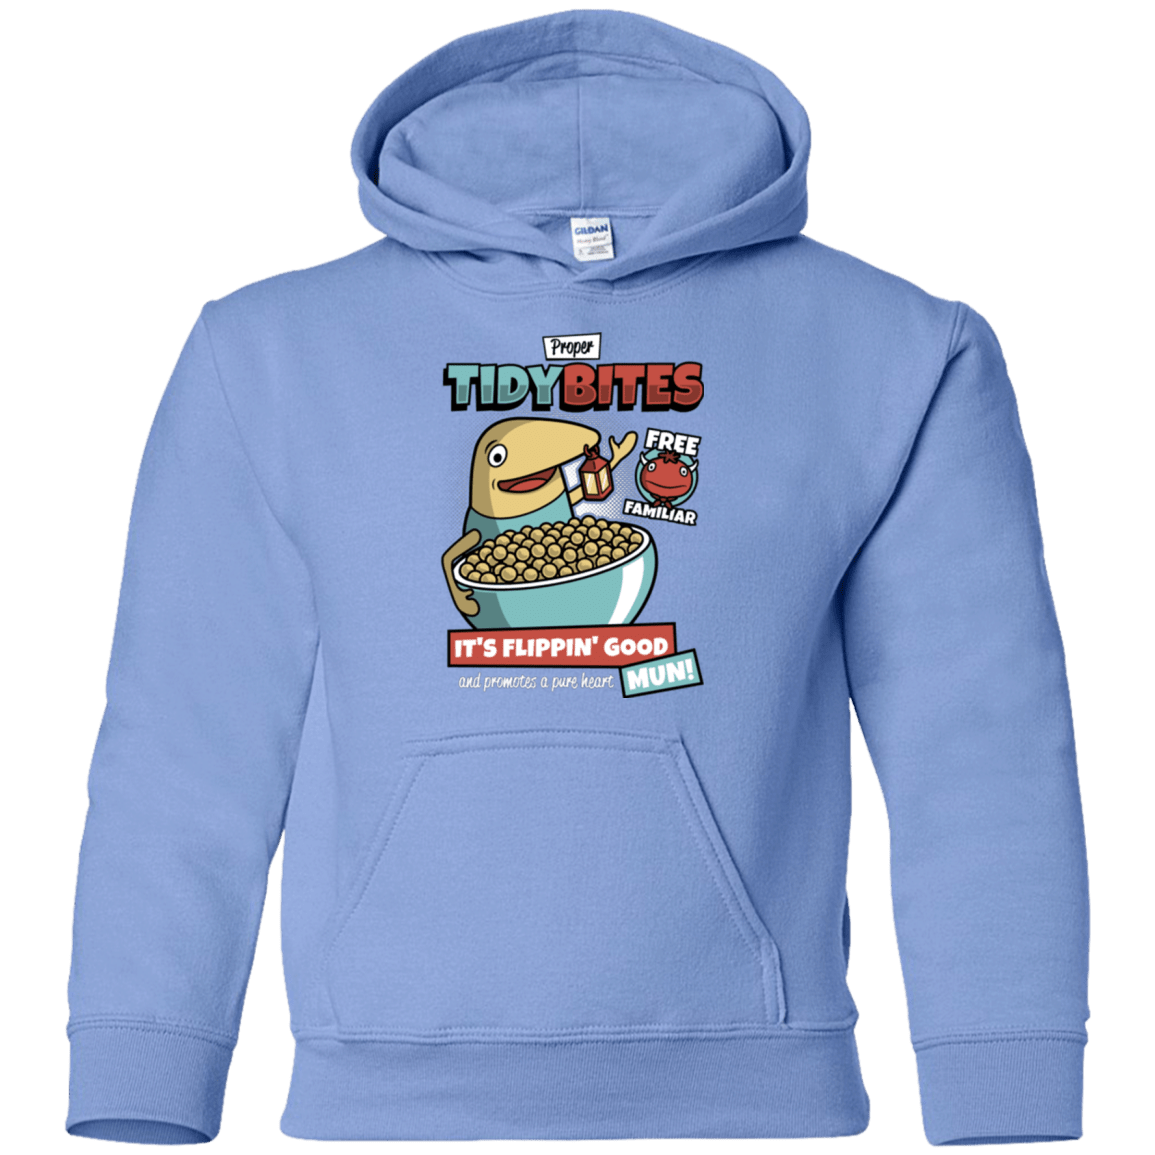 Sweatshirts Carolina Blue / YS PROPER TIDY BITES Youth Hoodie